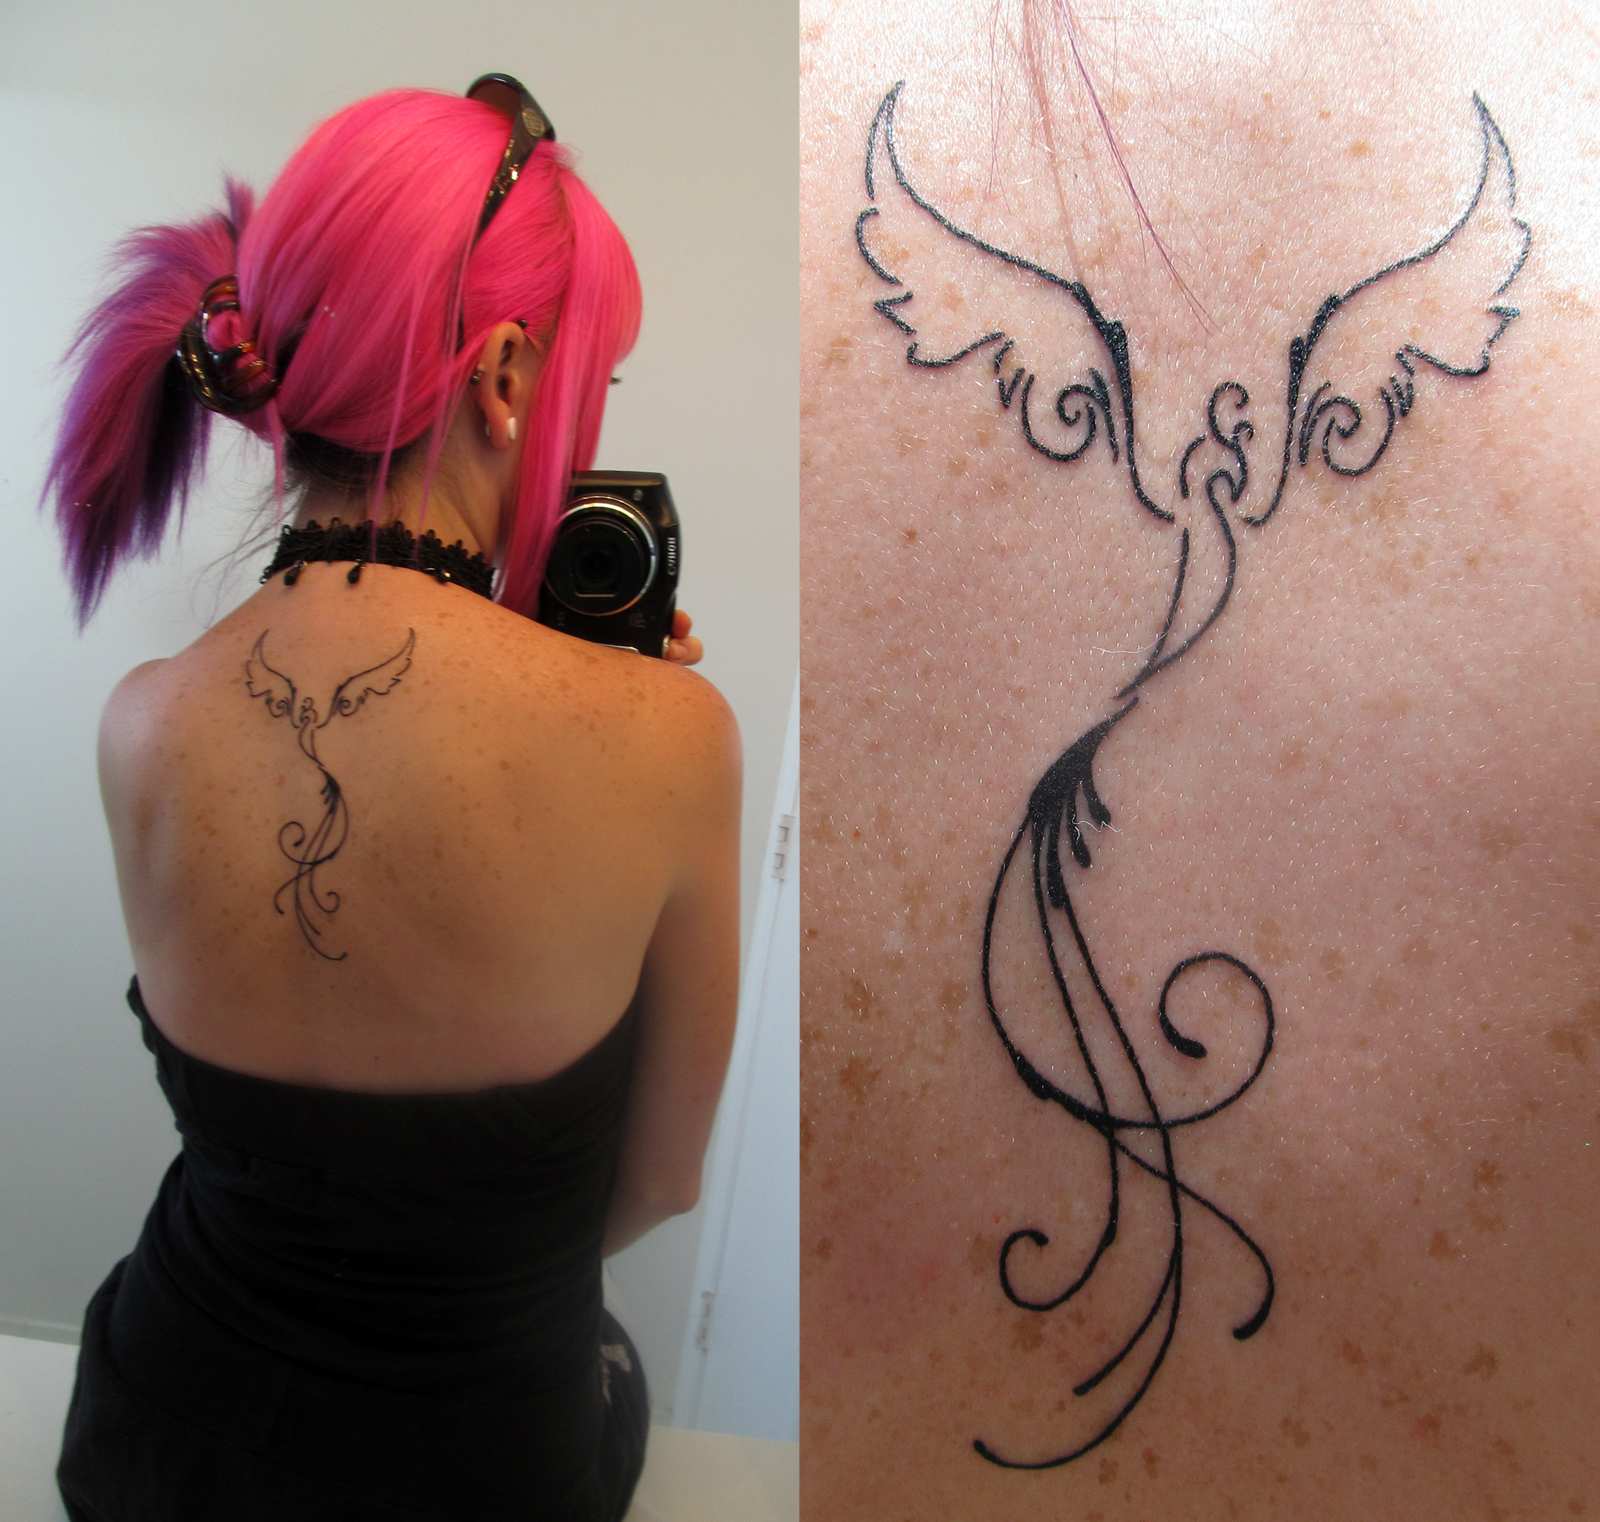 this could be a pretty alternative to the phoenix tattoo i'd been considering...